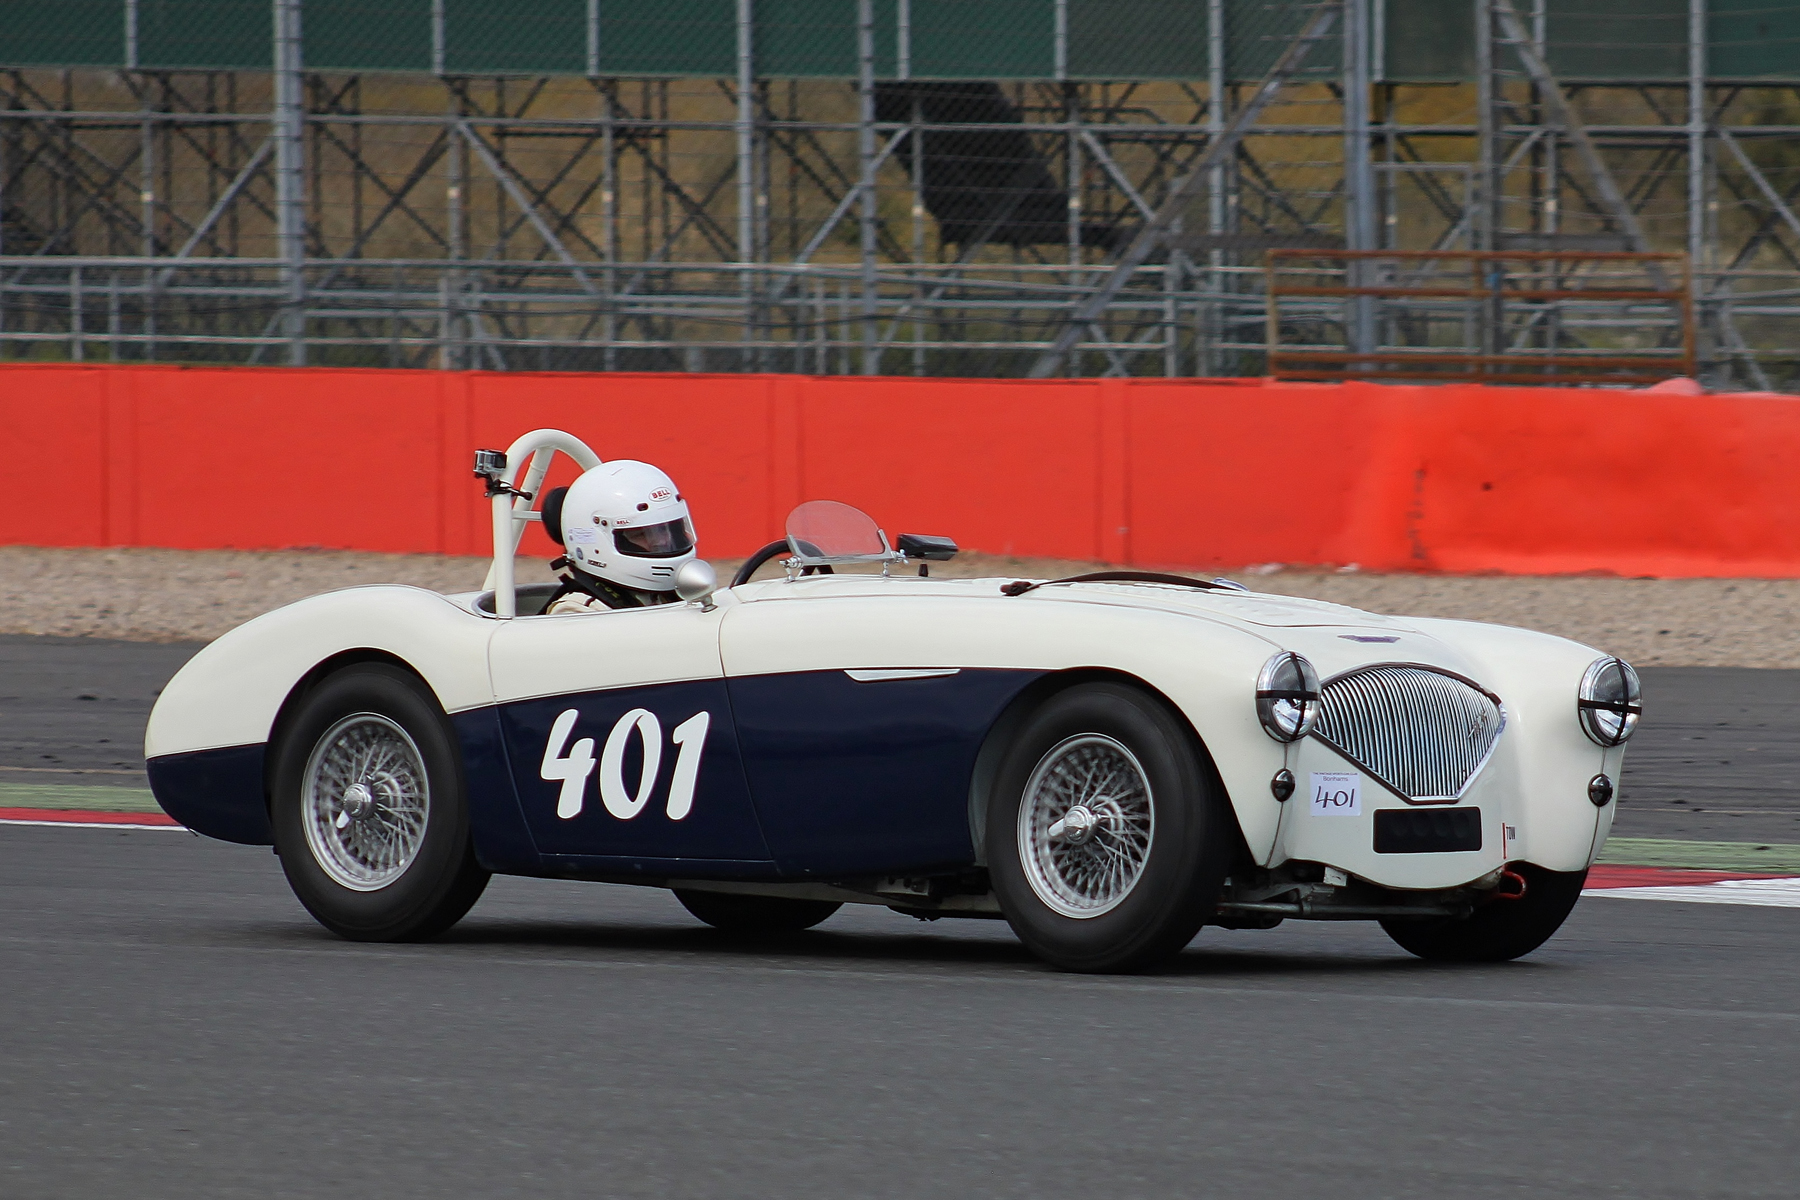 Novice, Jason Harris did a superb job both in qualifyimg and the race in his recently acquired Austin Healey 100/4        Photo - Bob Bull, Tripos Media